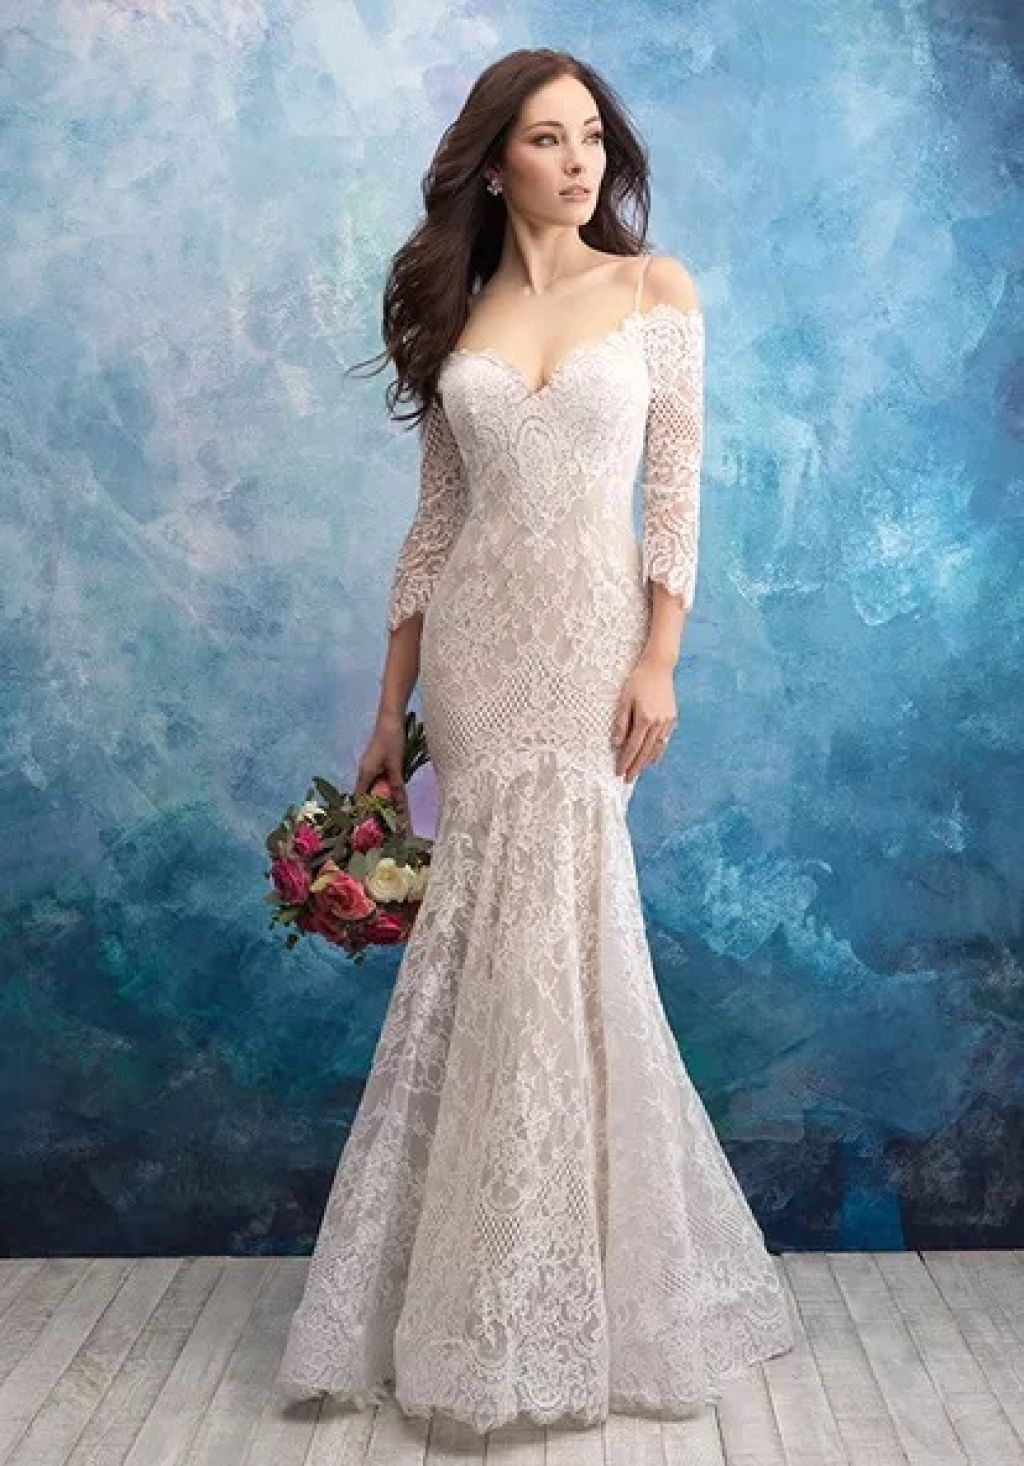 Stunning off the shoulder wedding dress by Allure Bridals with 3/4 sleeves